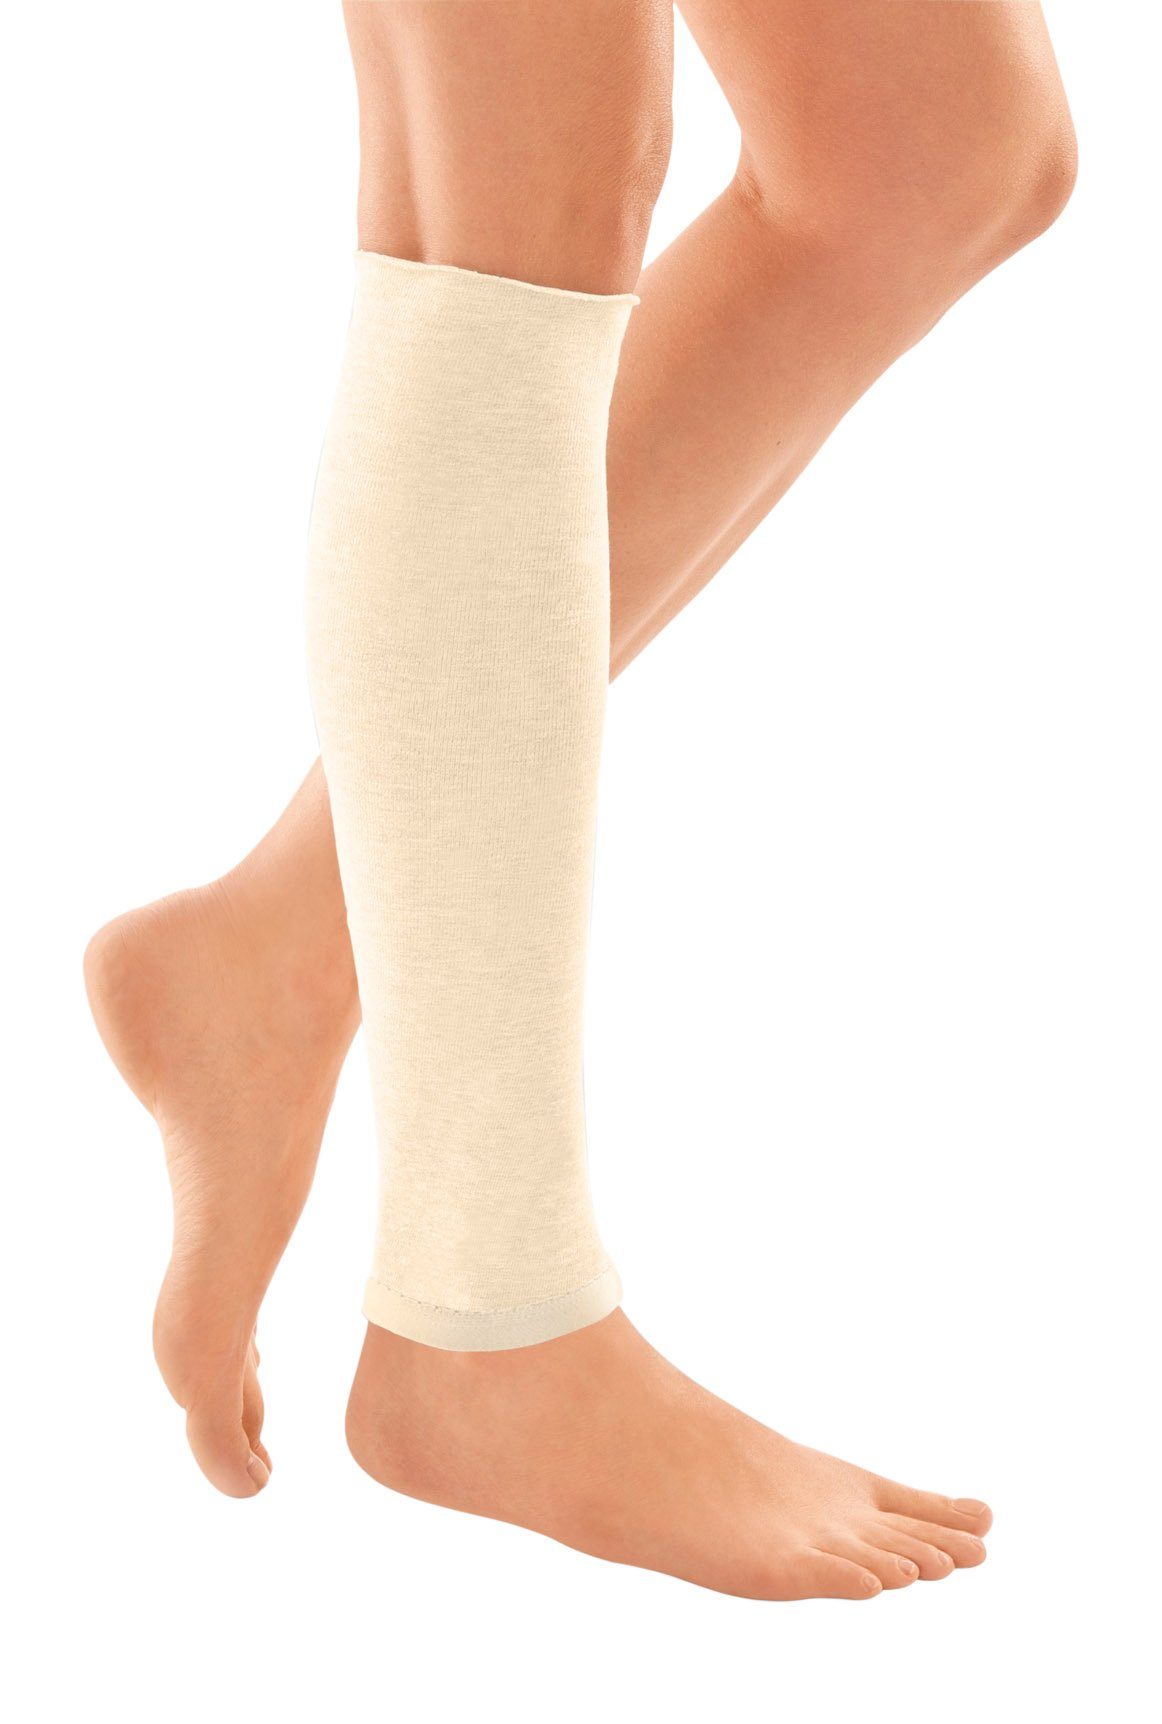 circaid Undersleeve – Leg, designed for comfort and light, convenient wear by Medi CircAid (Image #1)